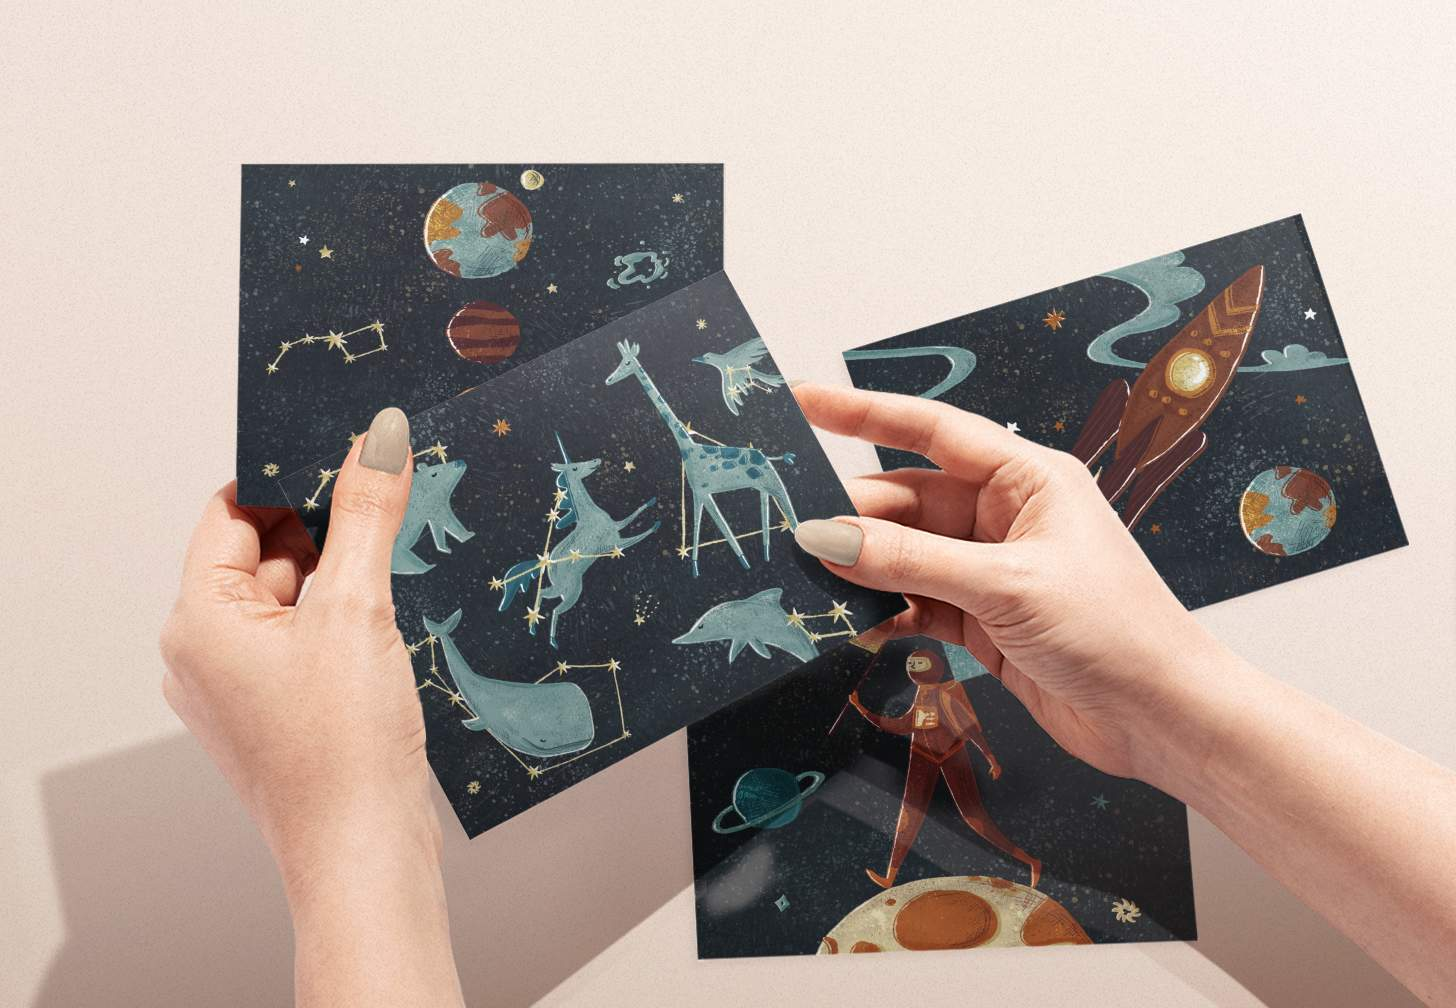 Woman's hands holding Blue animal constellation design with various outer space cards in background